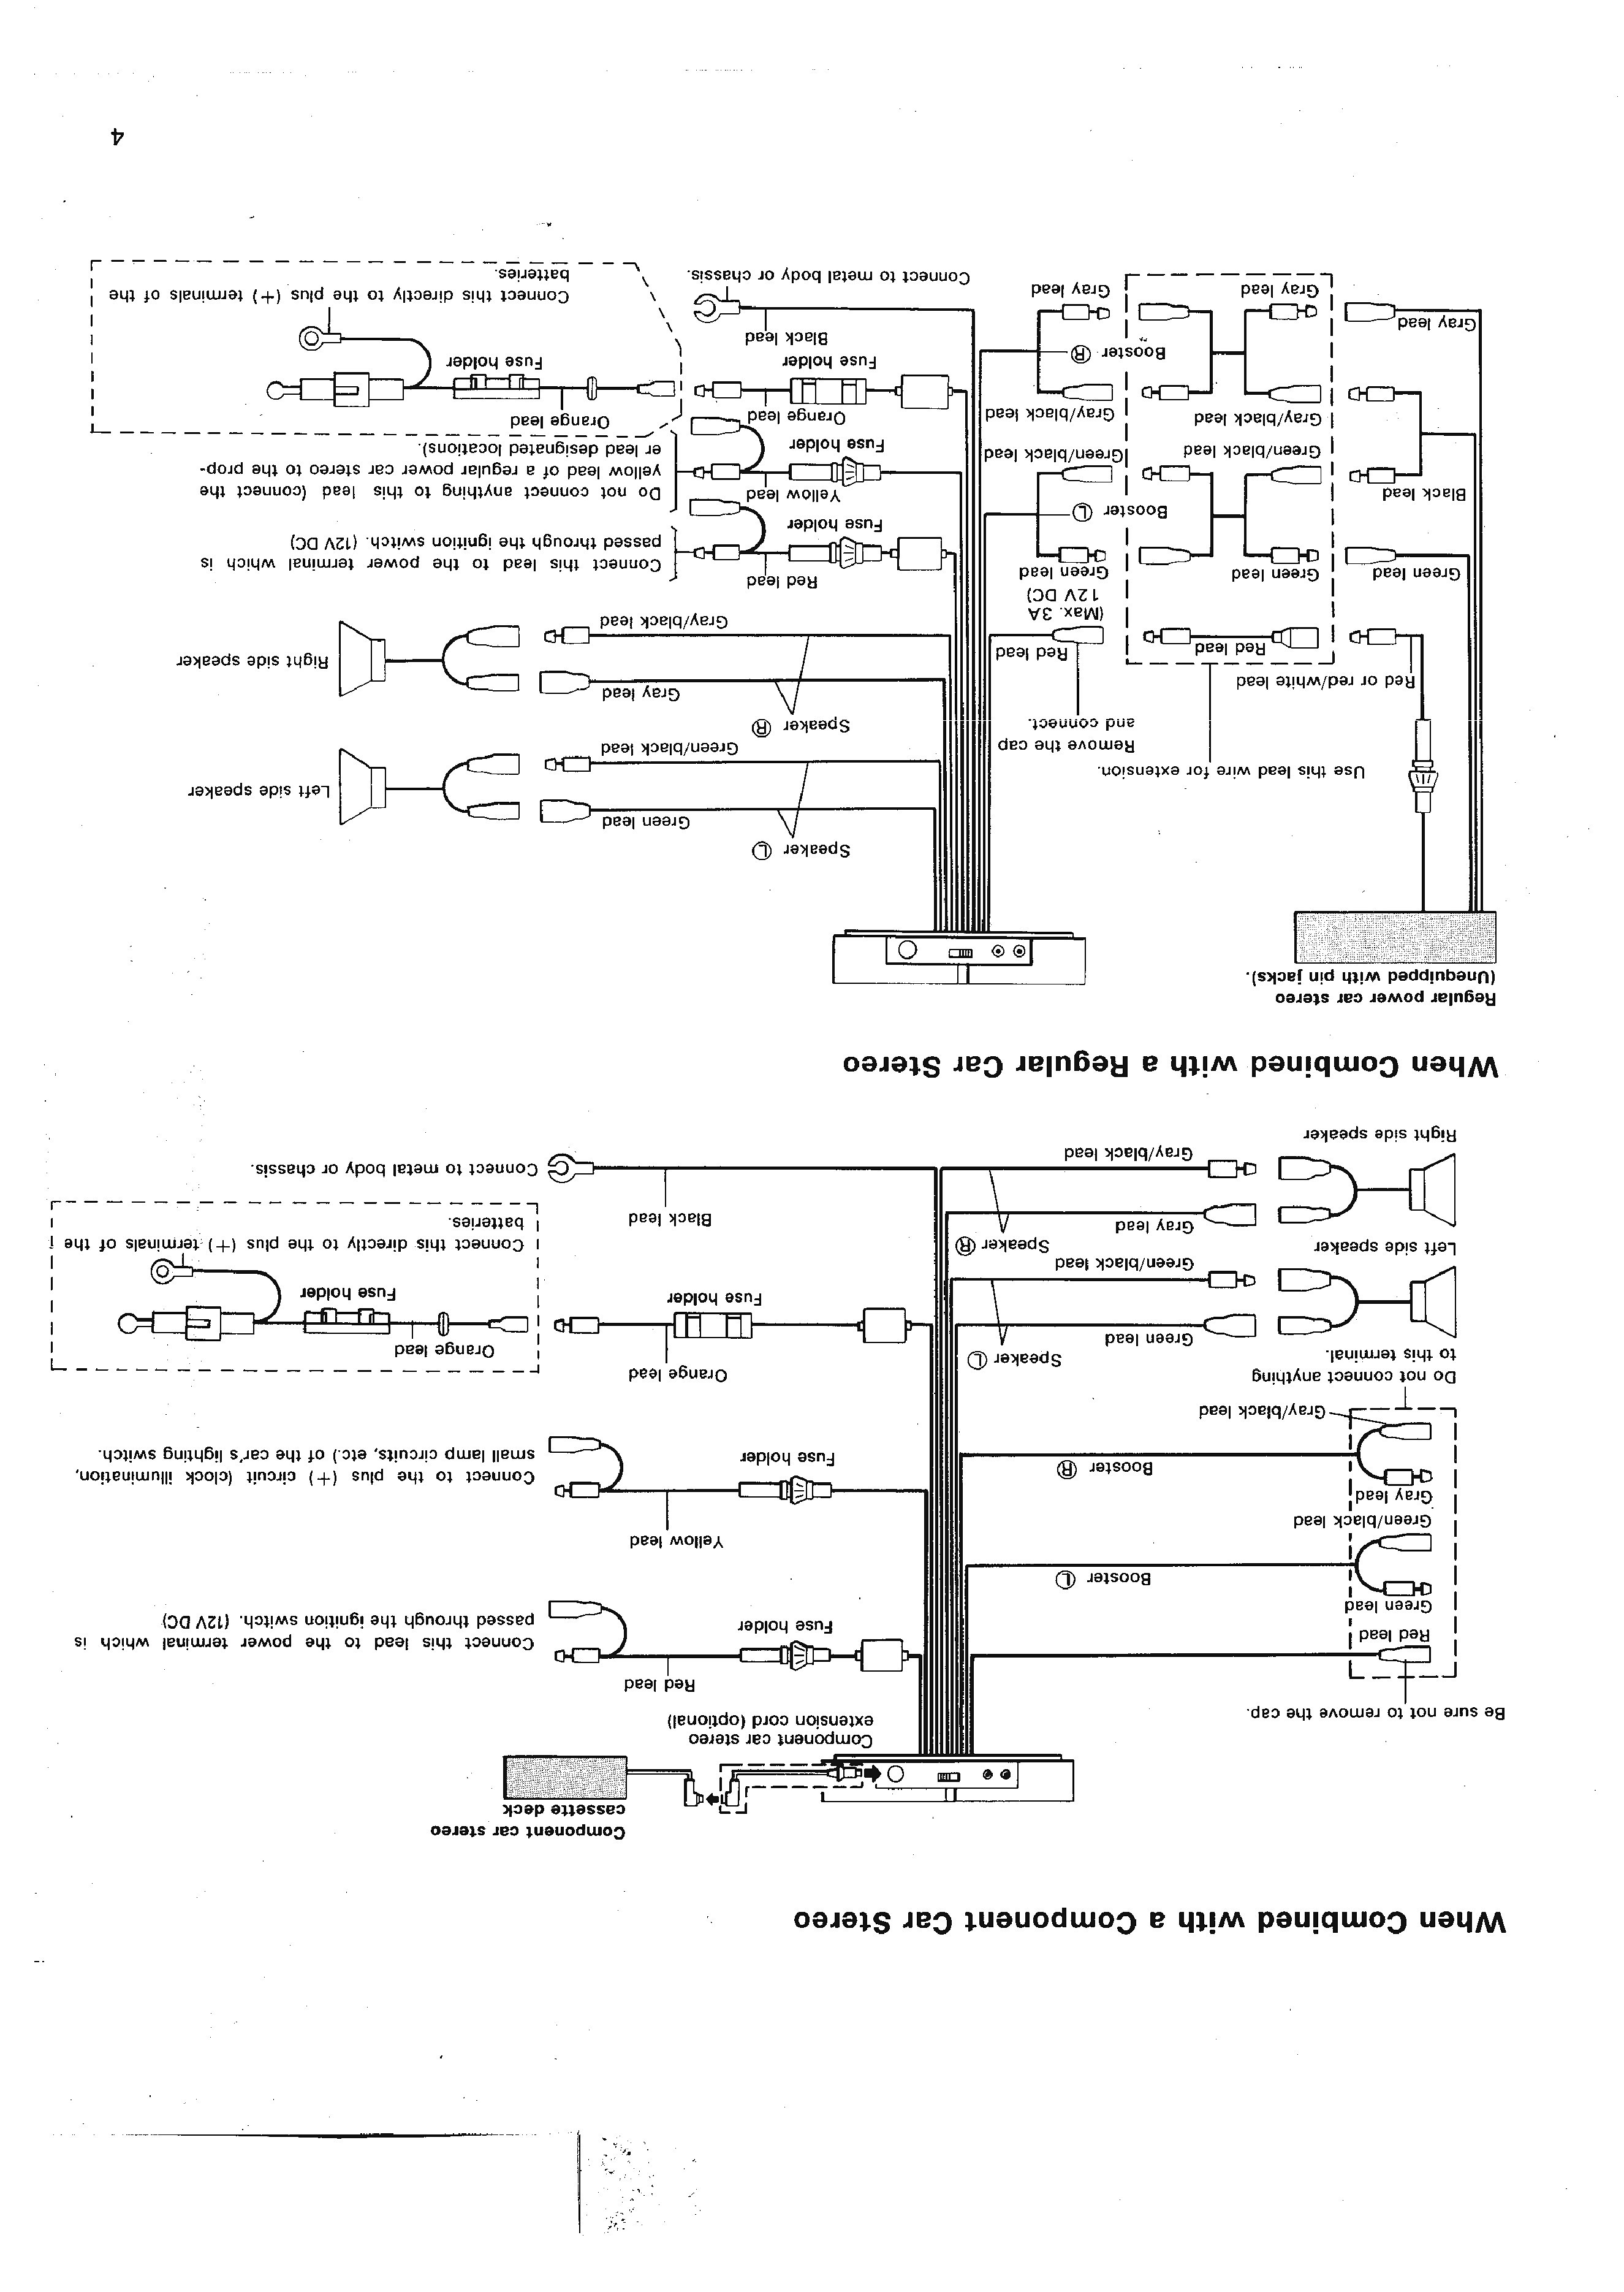 pioneer deh 17 wiring diagram -2008 chevy impala fuse box diagram | begeboy wiring  diagram source  begeboy wiring diagram source